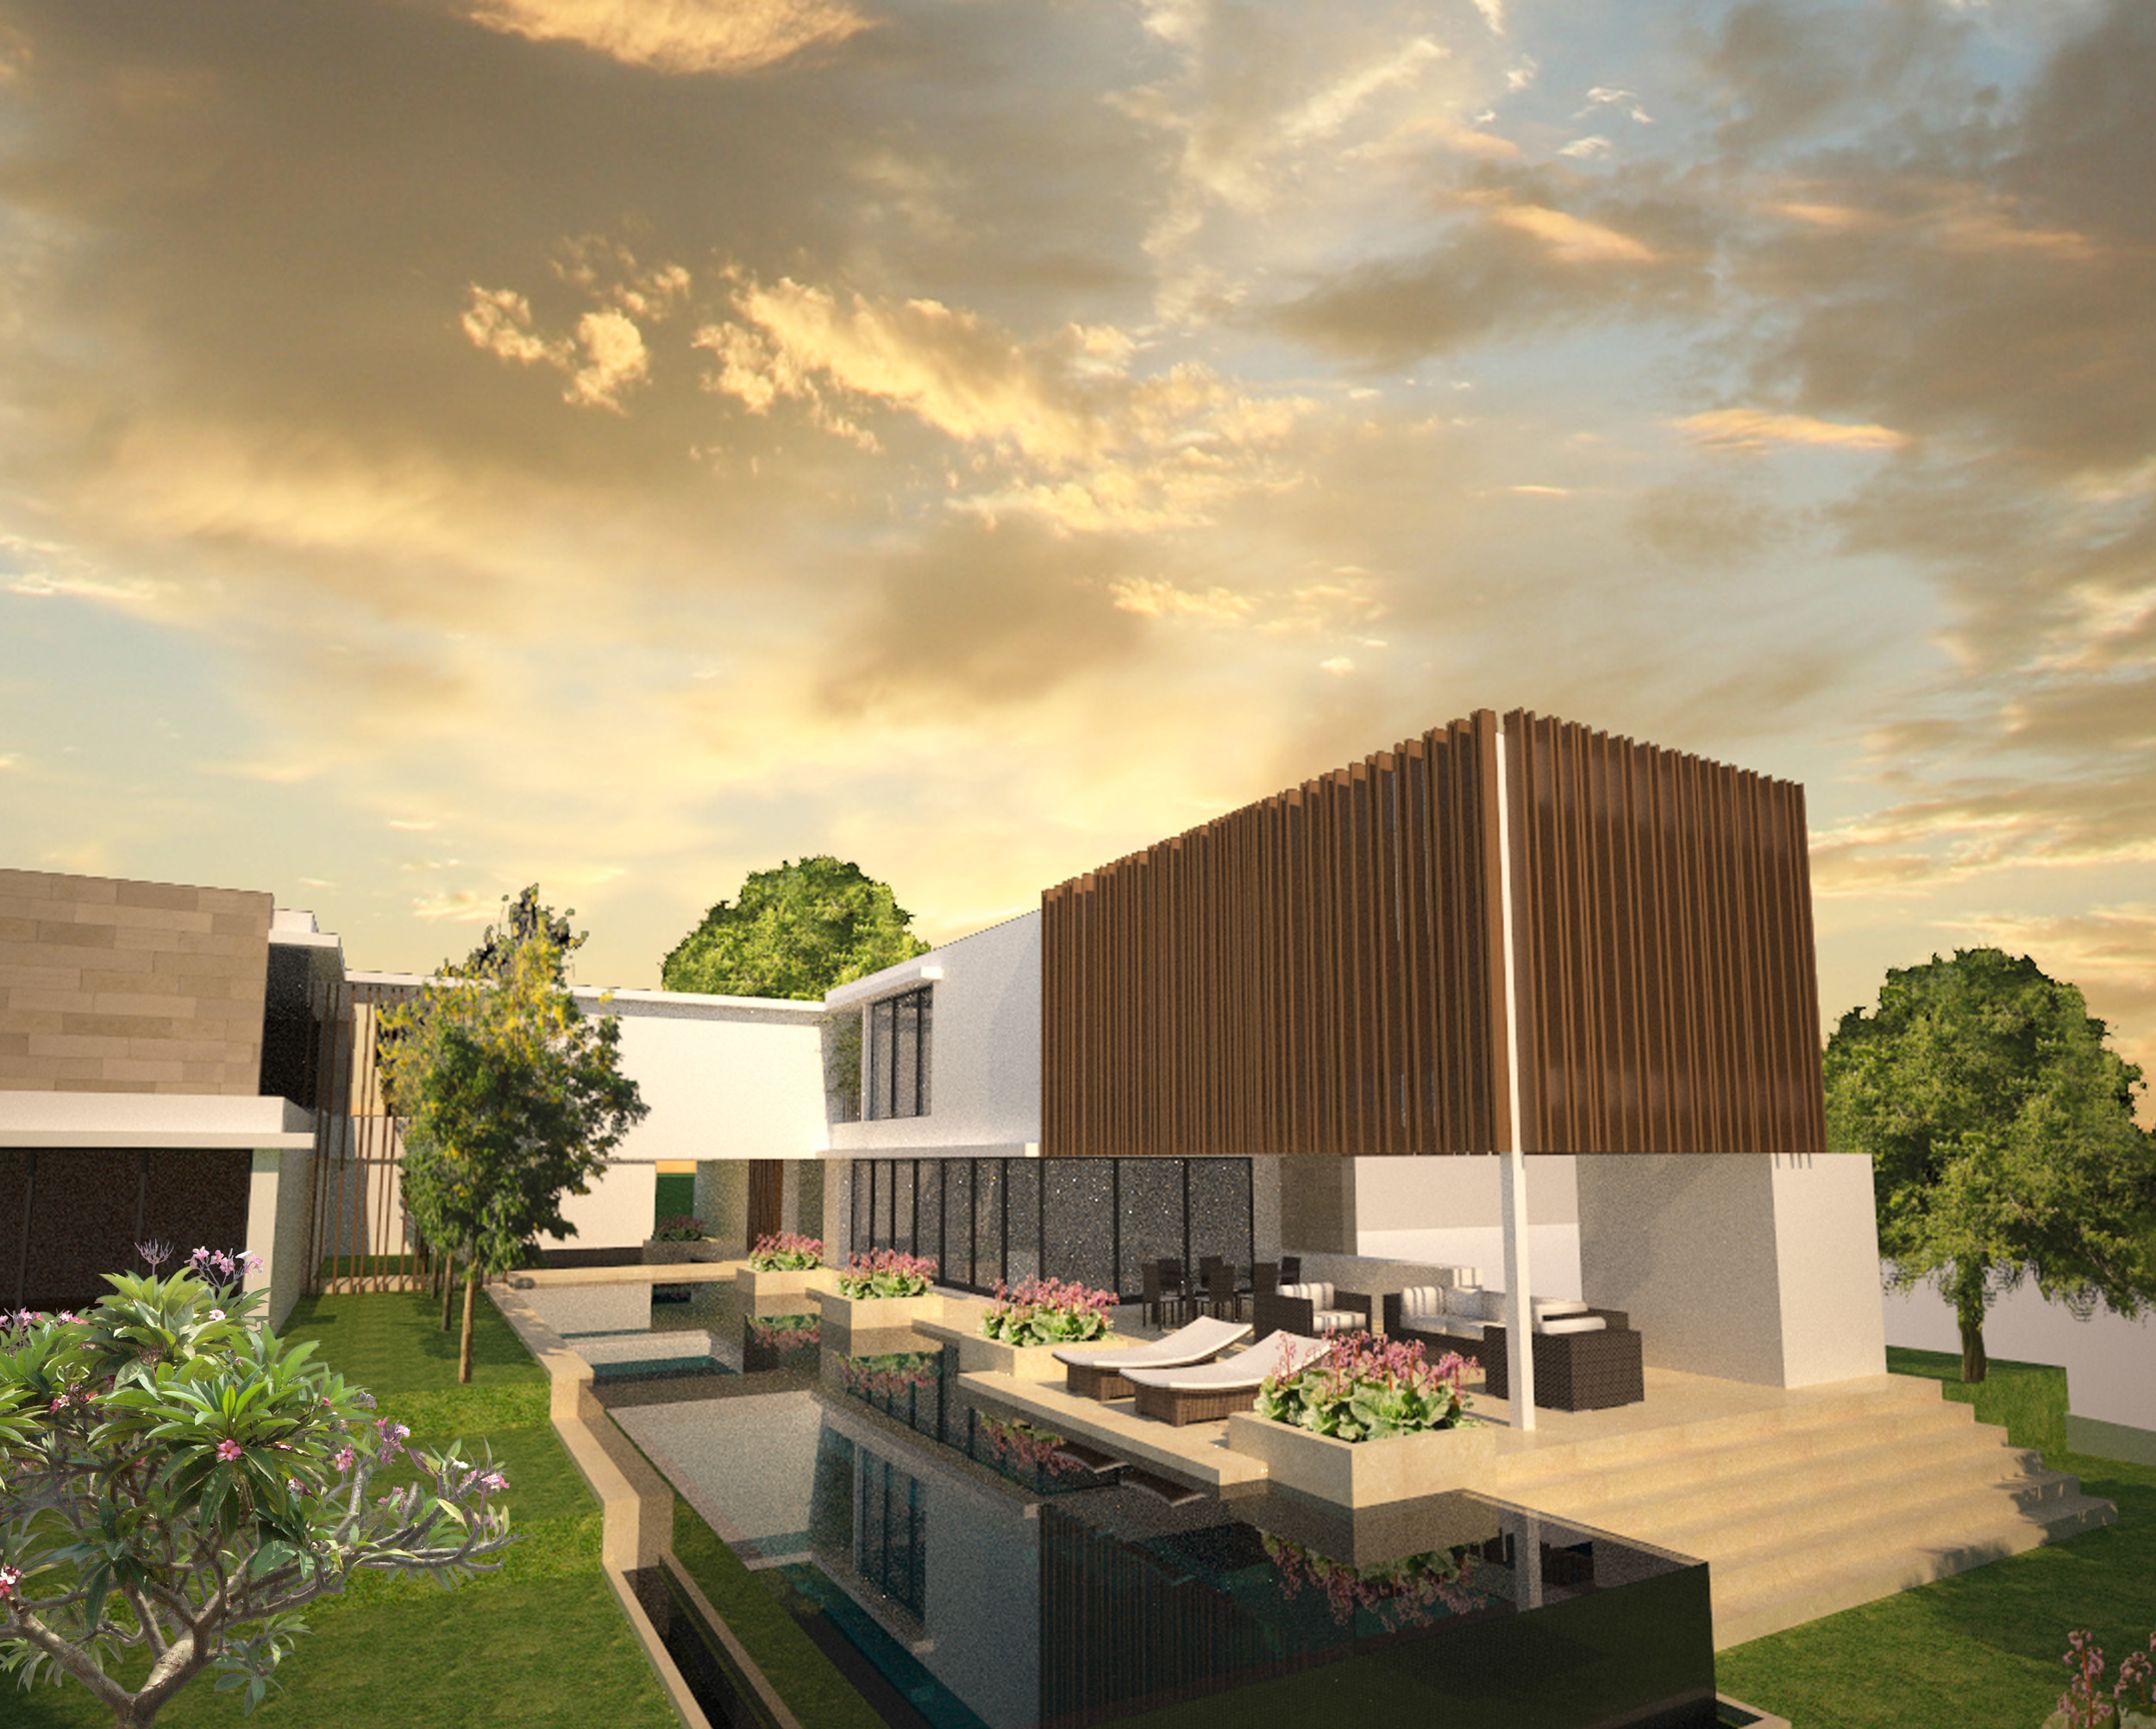 VILLA SERENITY, NUSAJAYA, JOHOR - in progress